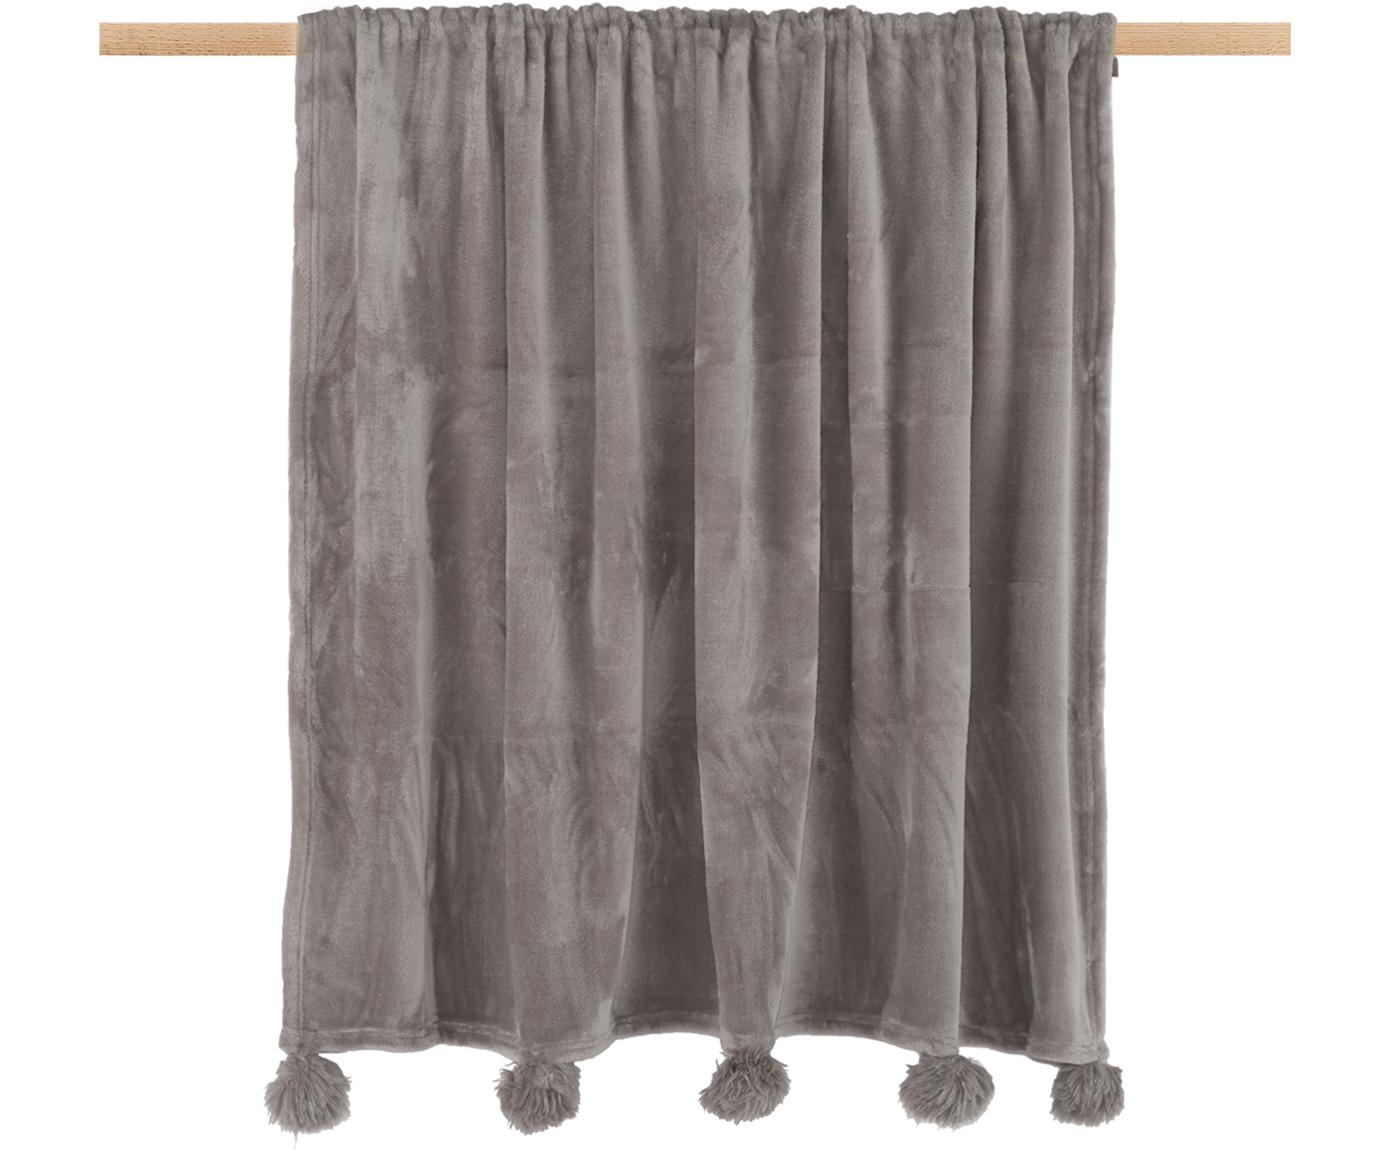 Fleece-Plaid Bomla, 100% Polyester, Taupe, 130 x 170 cm